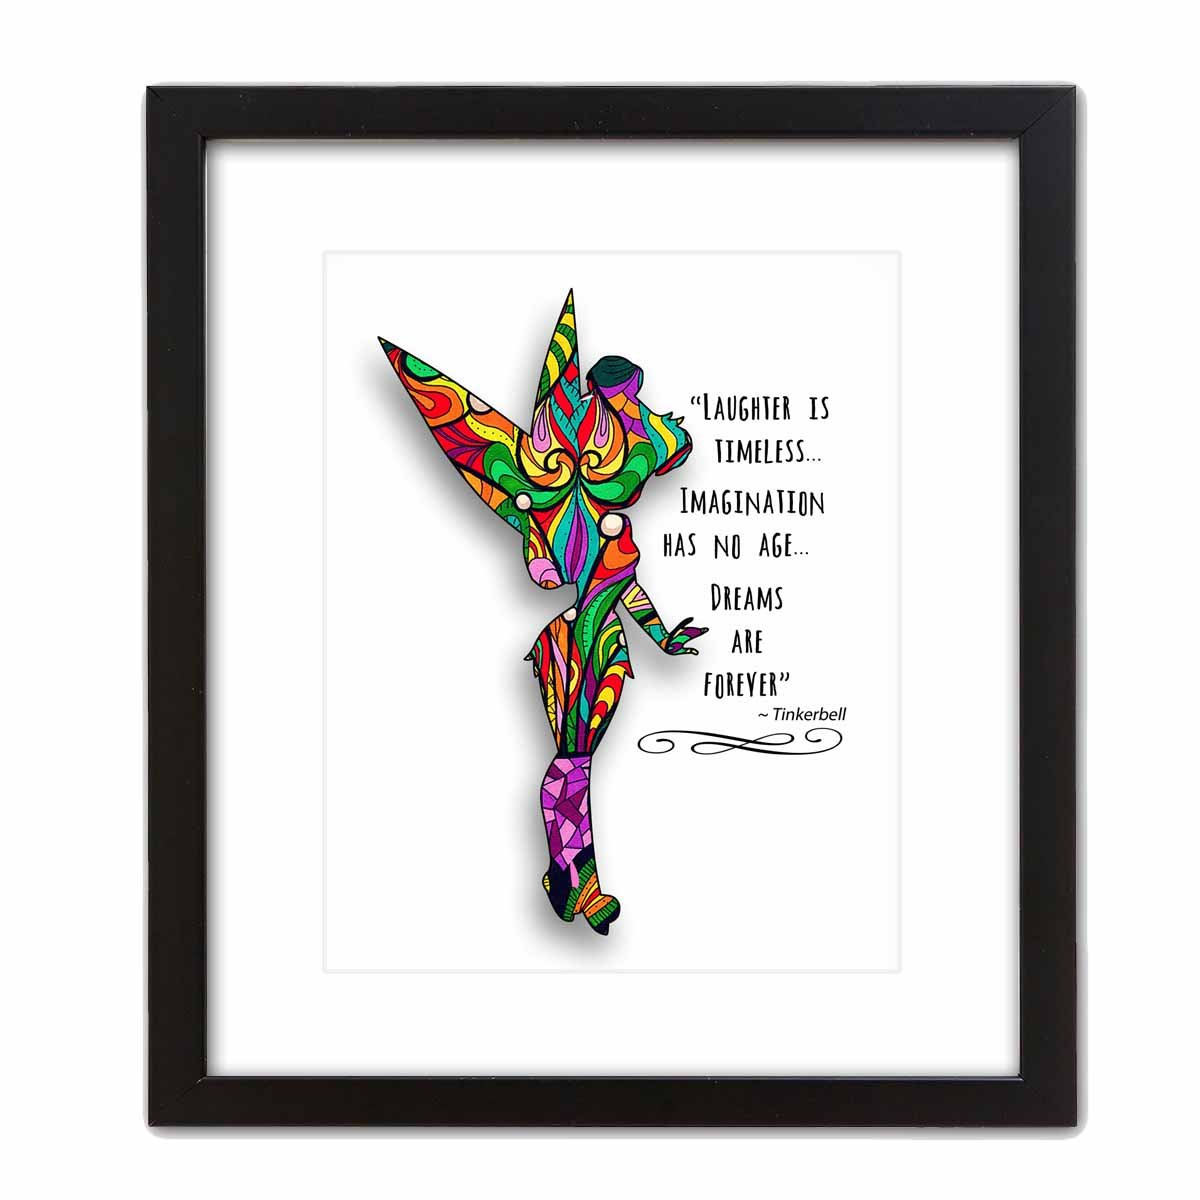 ArtDash Studio Custom Decorative Art Print 8/×10 print DREAMS ARE FOREVER ~ The Perfect Gift for that Special Person or Child who Loves Tinkerbell...